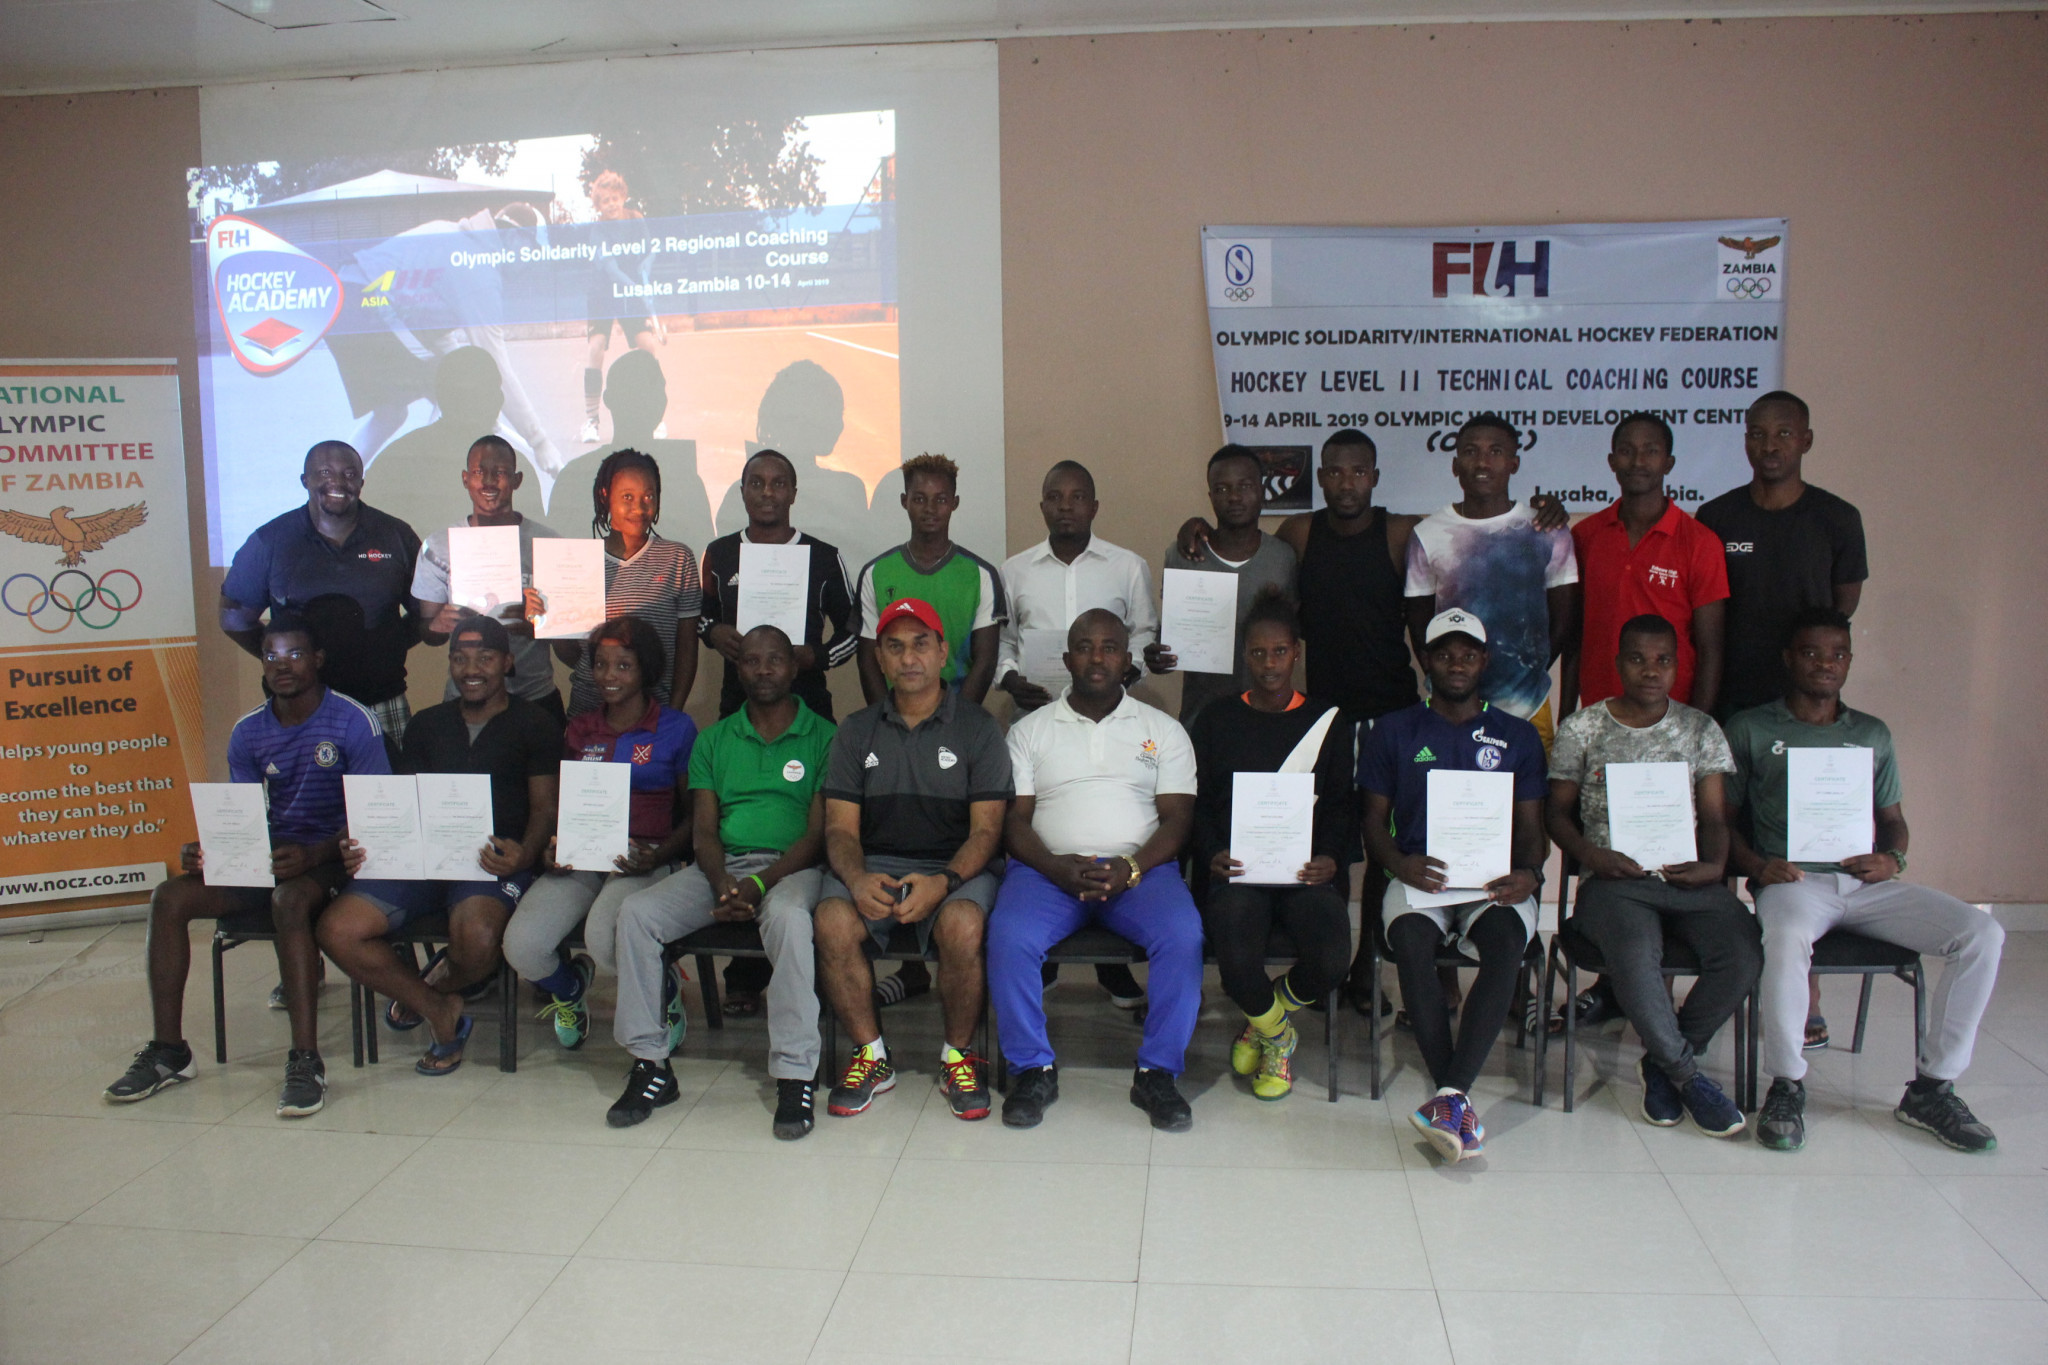 Zambia hosts hockey training coaching course for Southern African nations